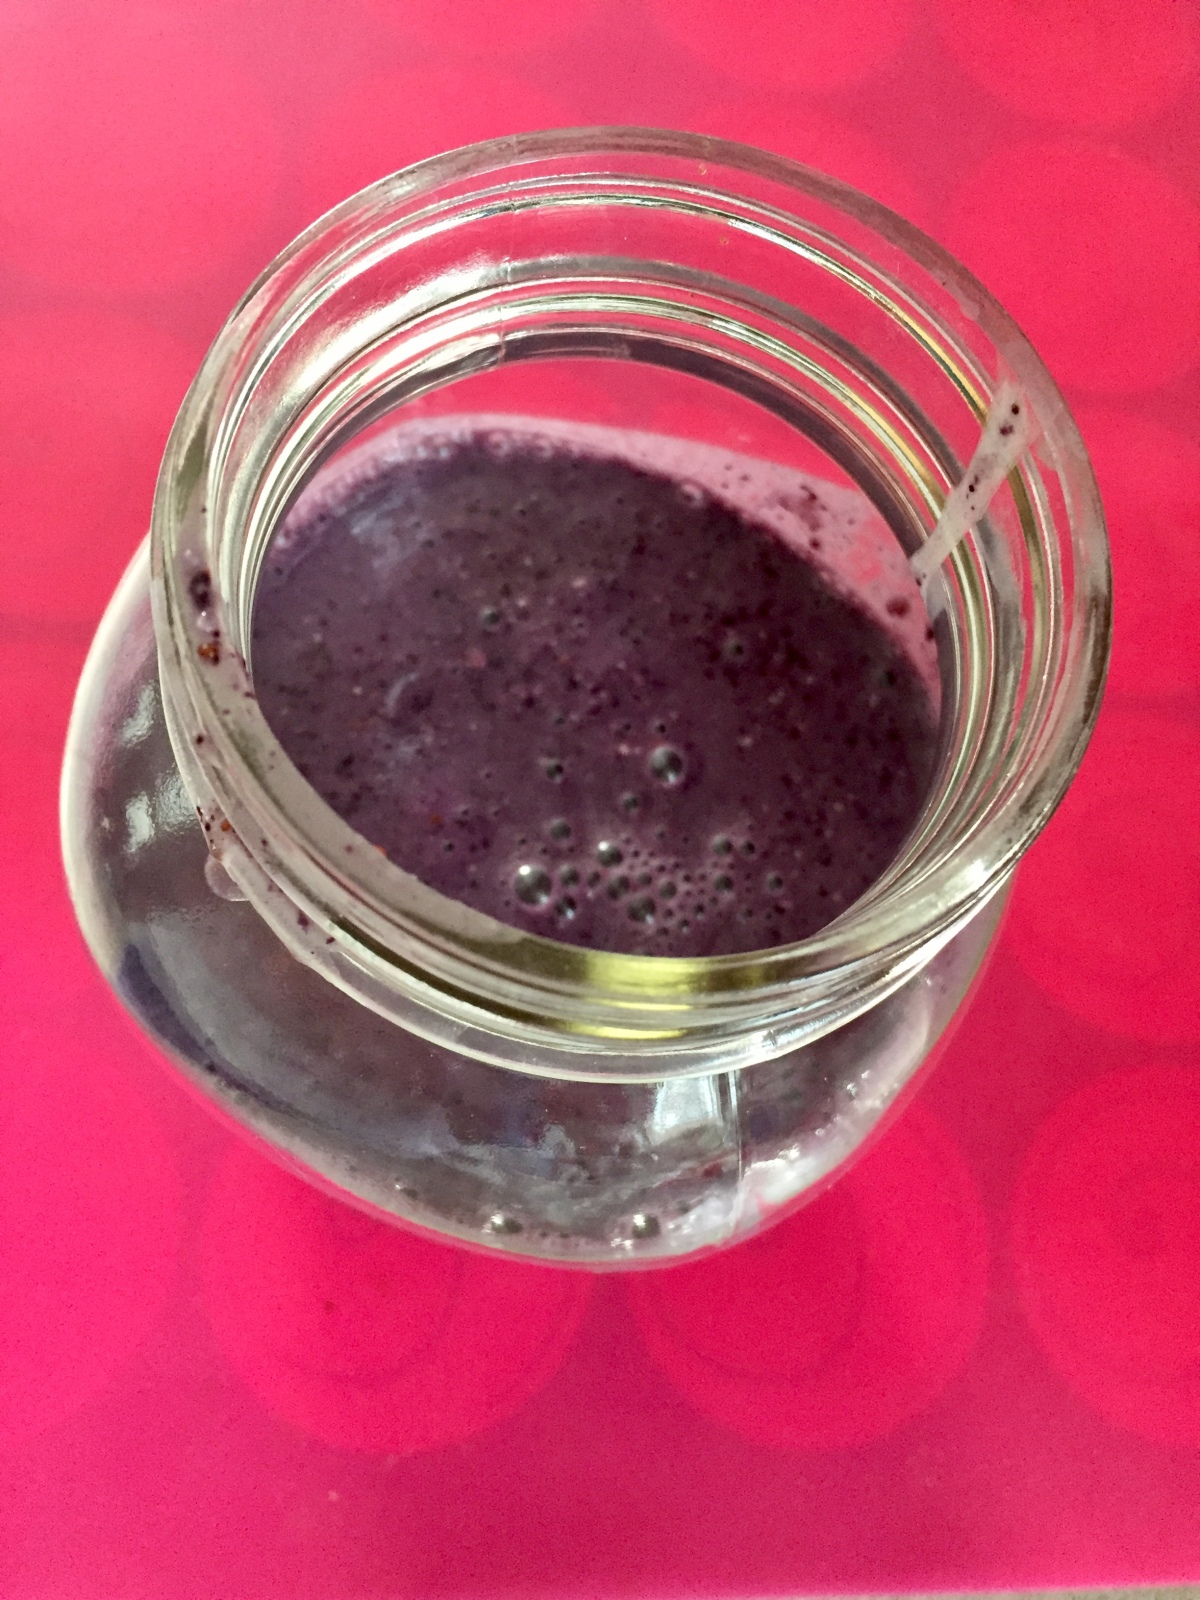 Reboot smoothie with blueberries, peanut butter powder, and oatmeal